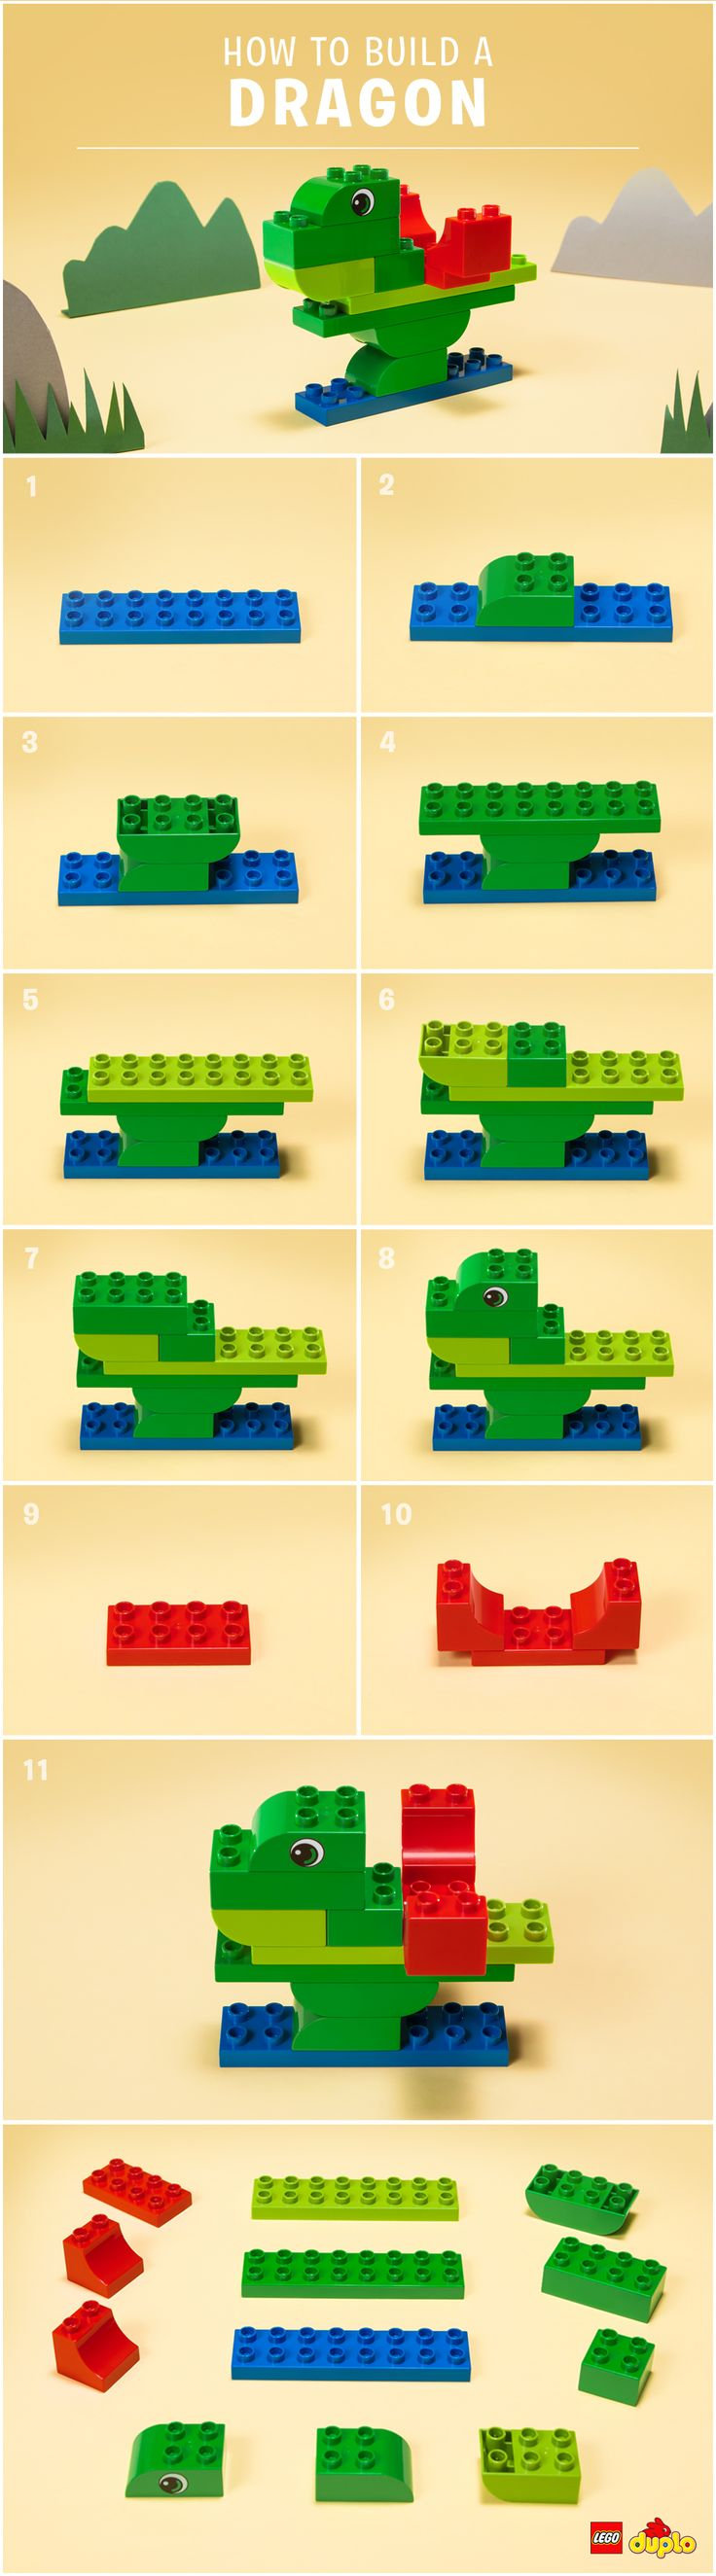 Rooooaaar! Find out here how to build this LEGO DUPLO dragon with your little one: http://www.lego.com/en-us/family/articles/the-unlikely-way-to-help-with-tantrums-ce9832ac263c4c9ba8abfc785d3bacba